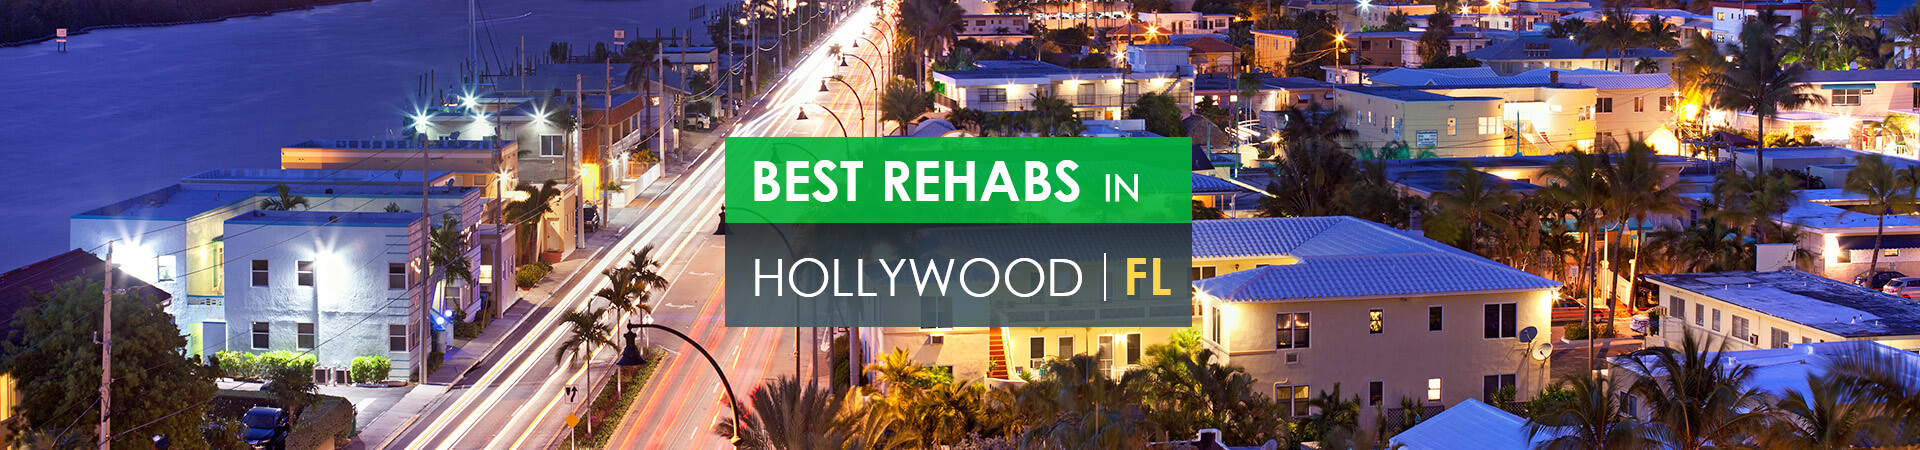 Best rehabs in Hollywood, FL